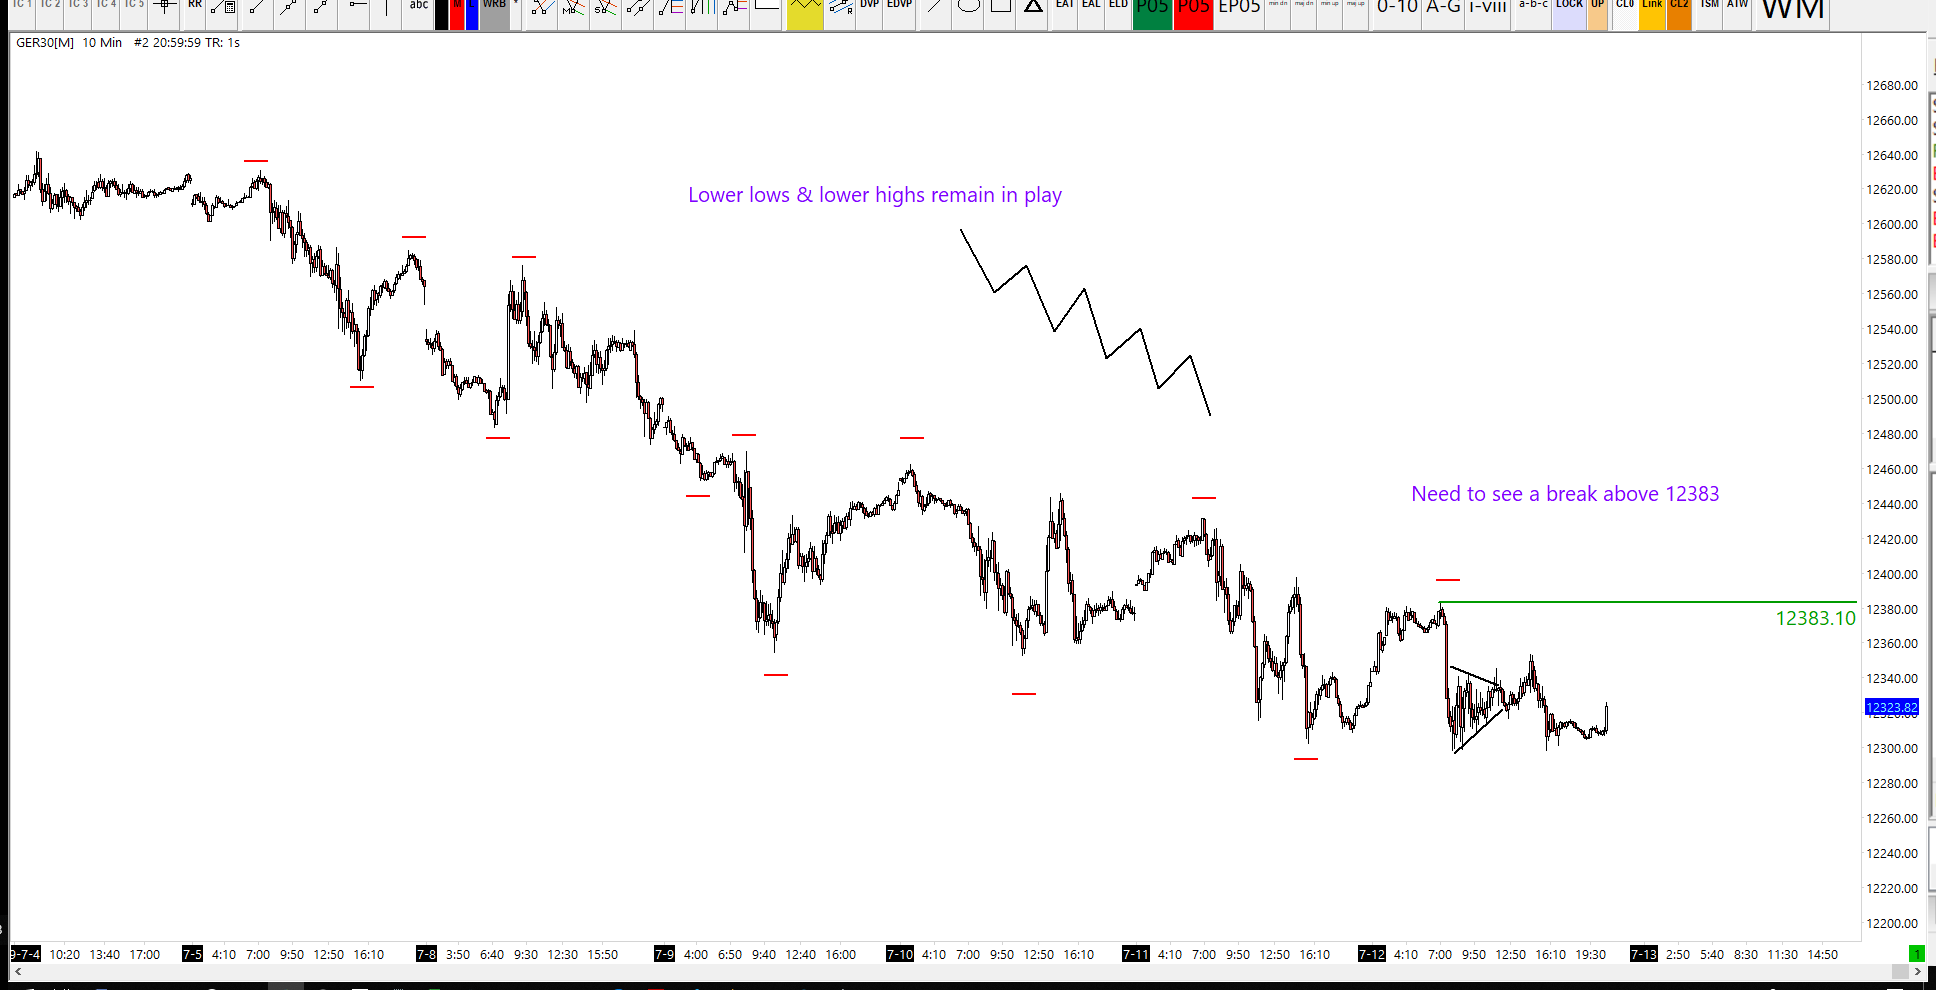 Dax threatens to rally after breaking series of lower lows and lower highs